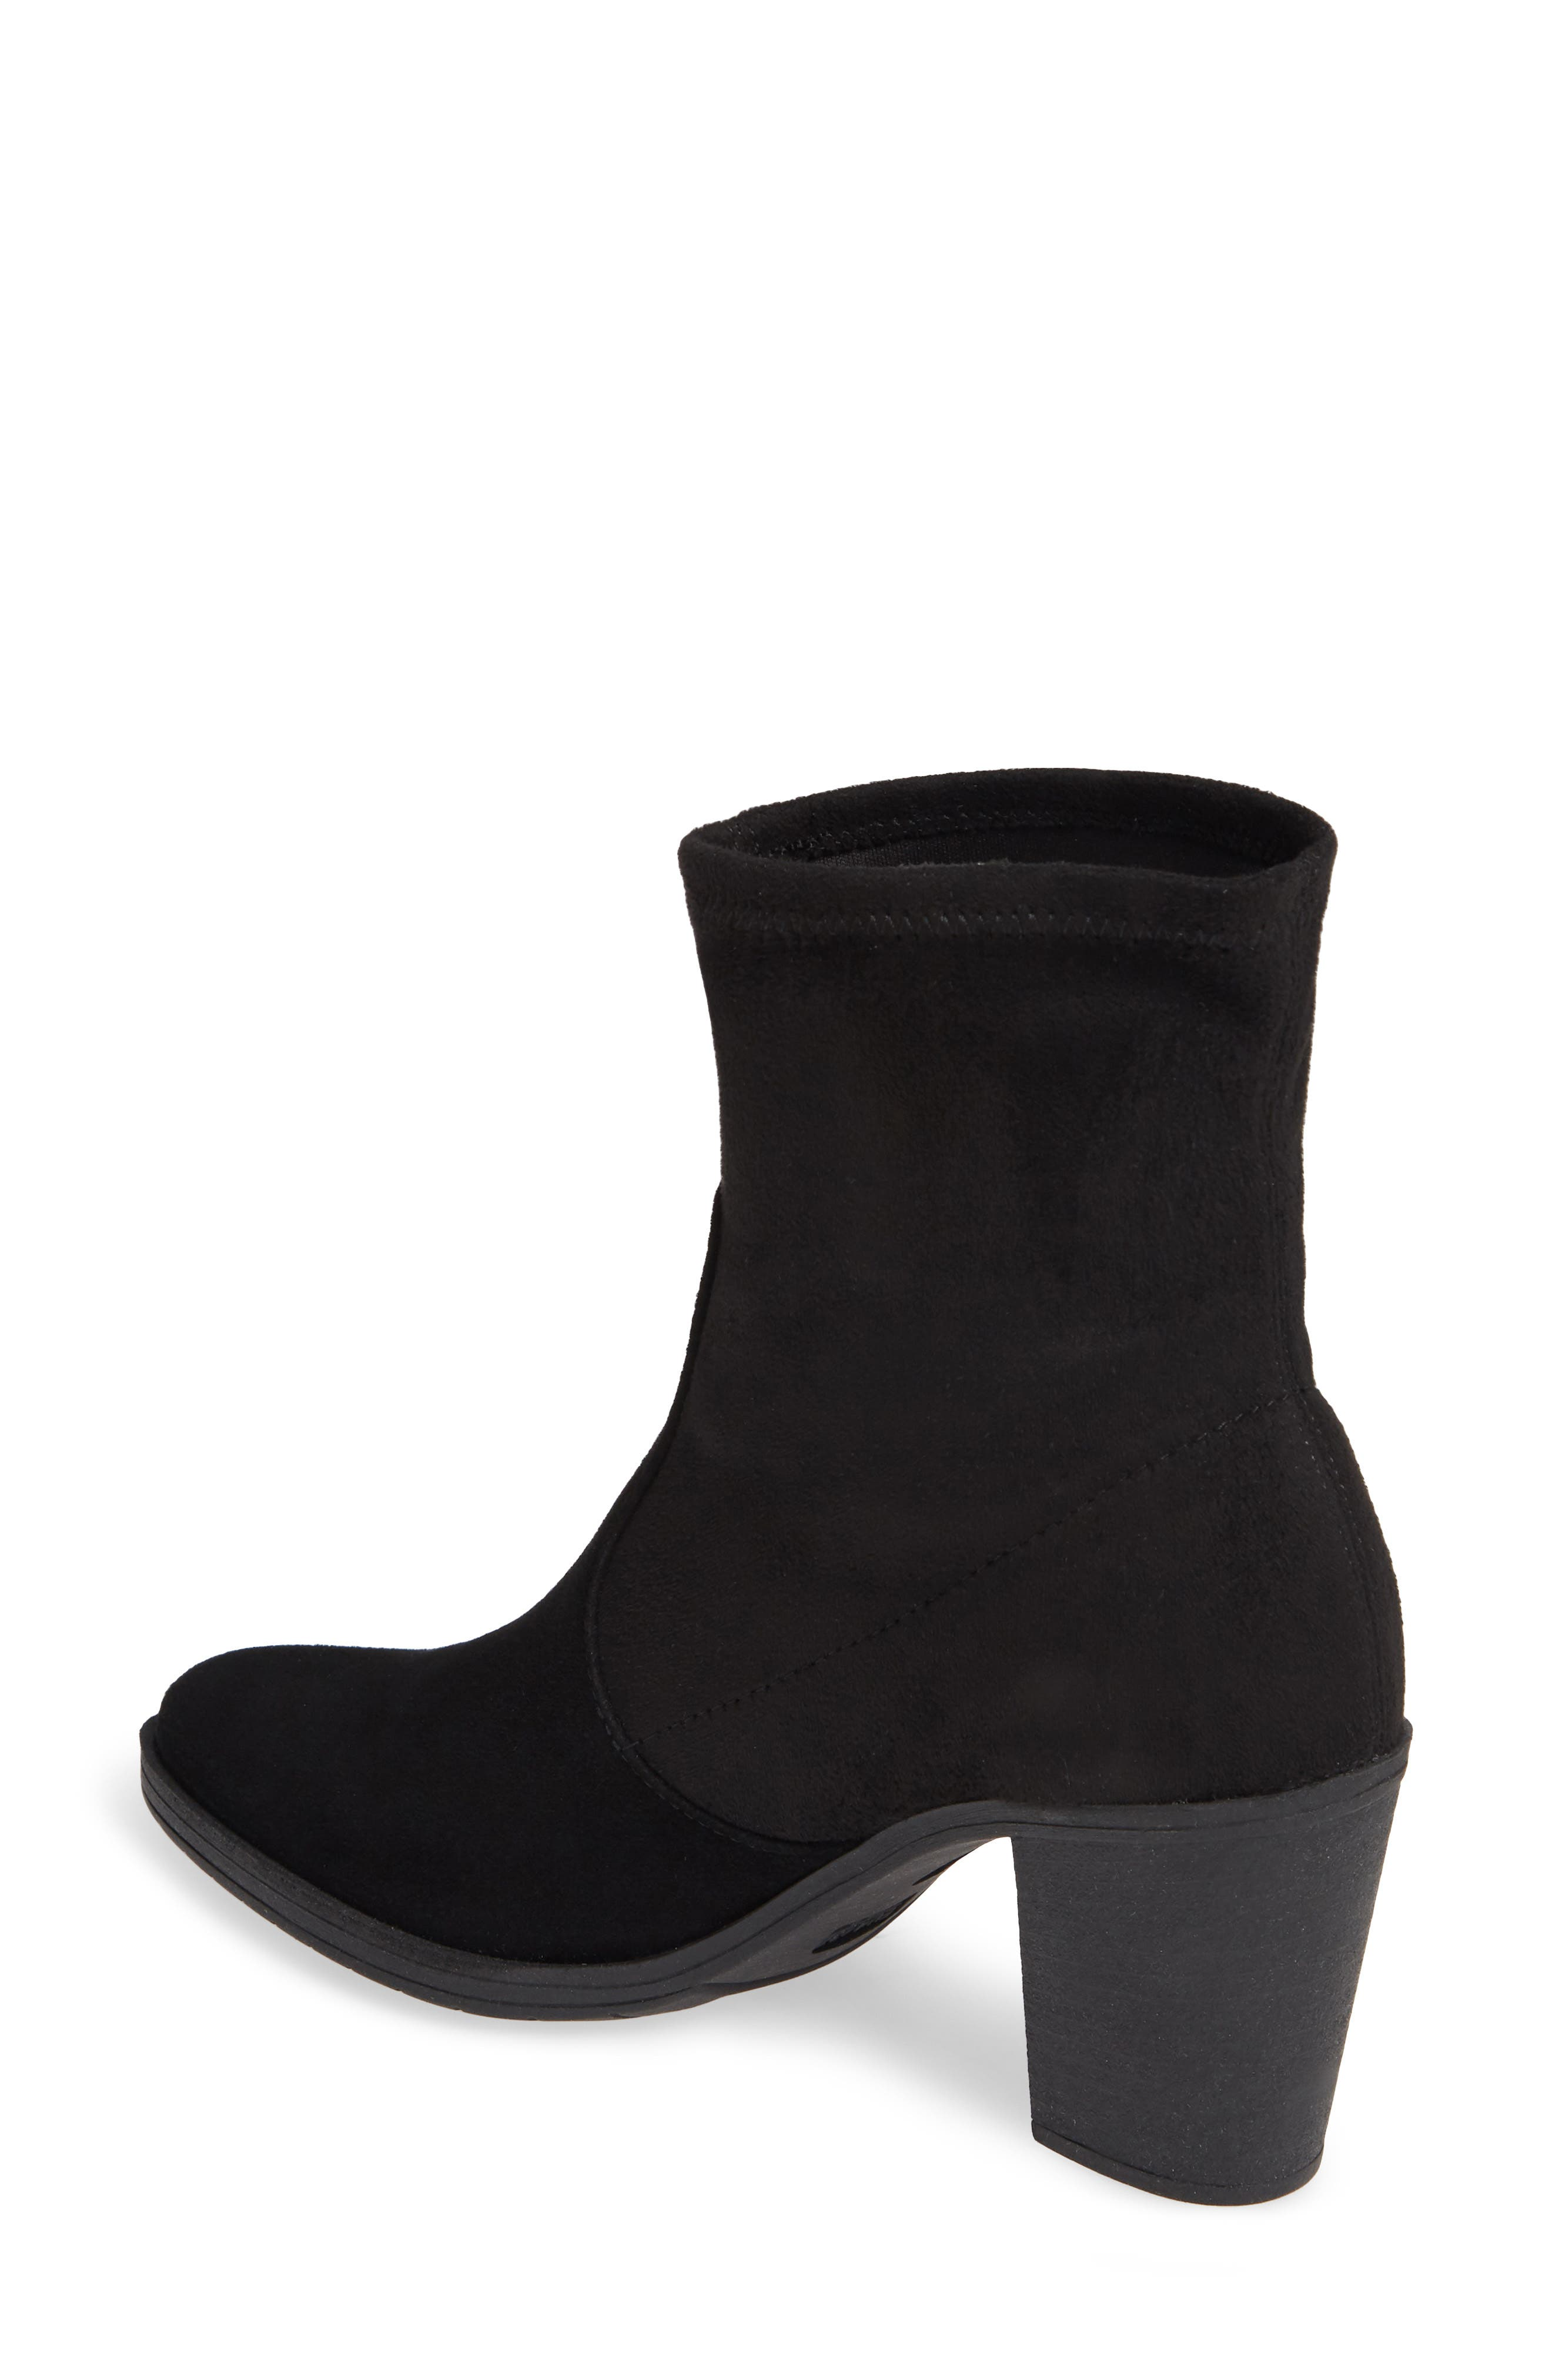 On The Rocks Bootie,                             Alternate thumbnail 2, color,                             BLACK SUEDE